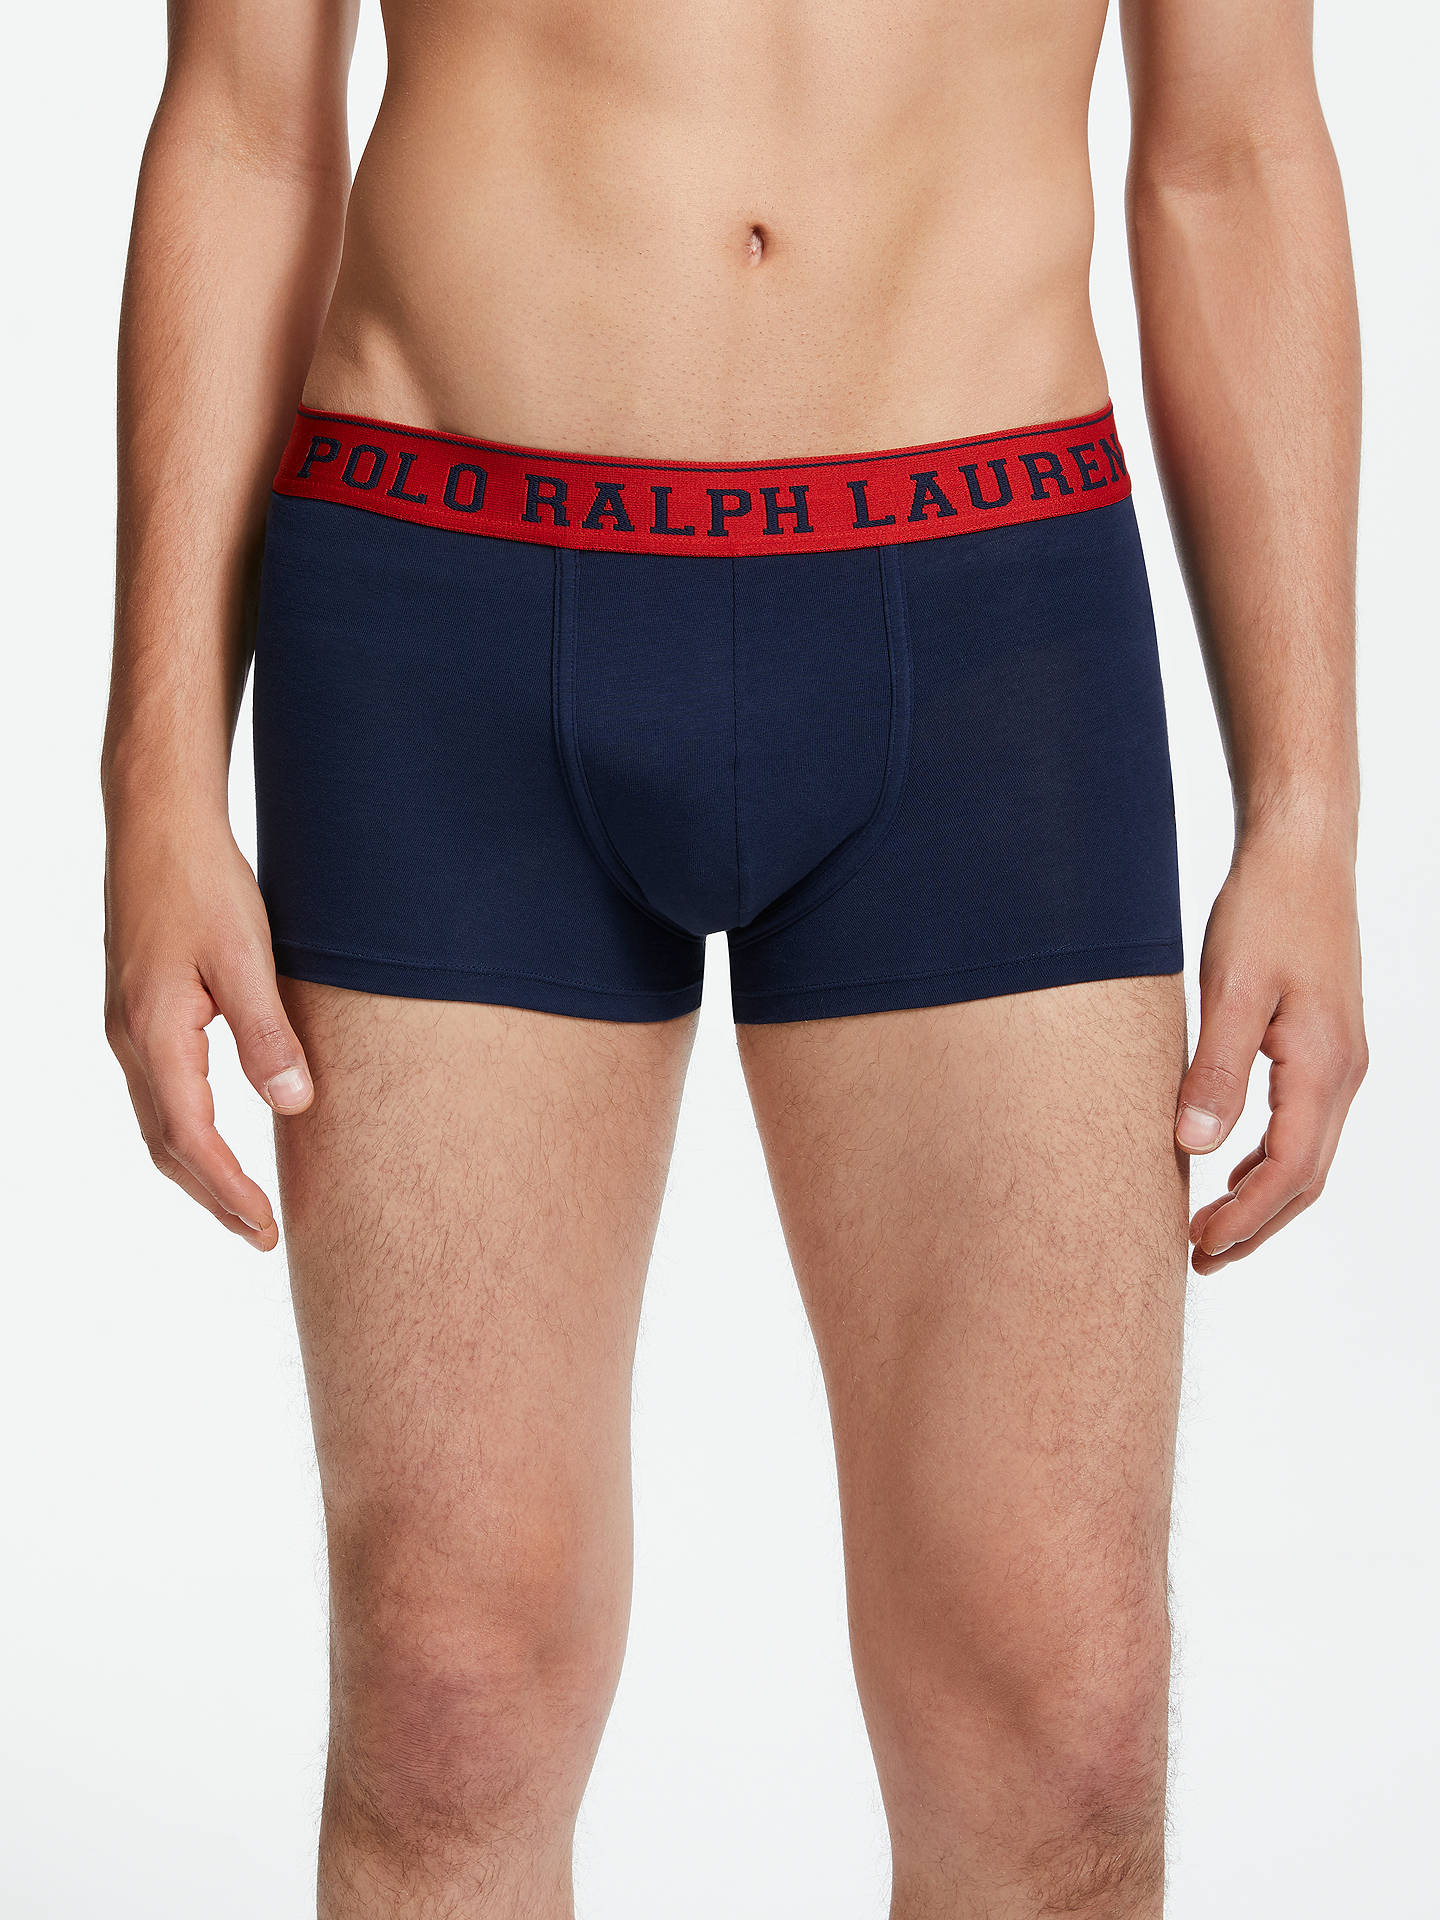 BuyPolo Ralph Lauren Cruise Trunks, Navy, S Online at johnlewis.com